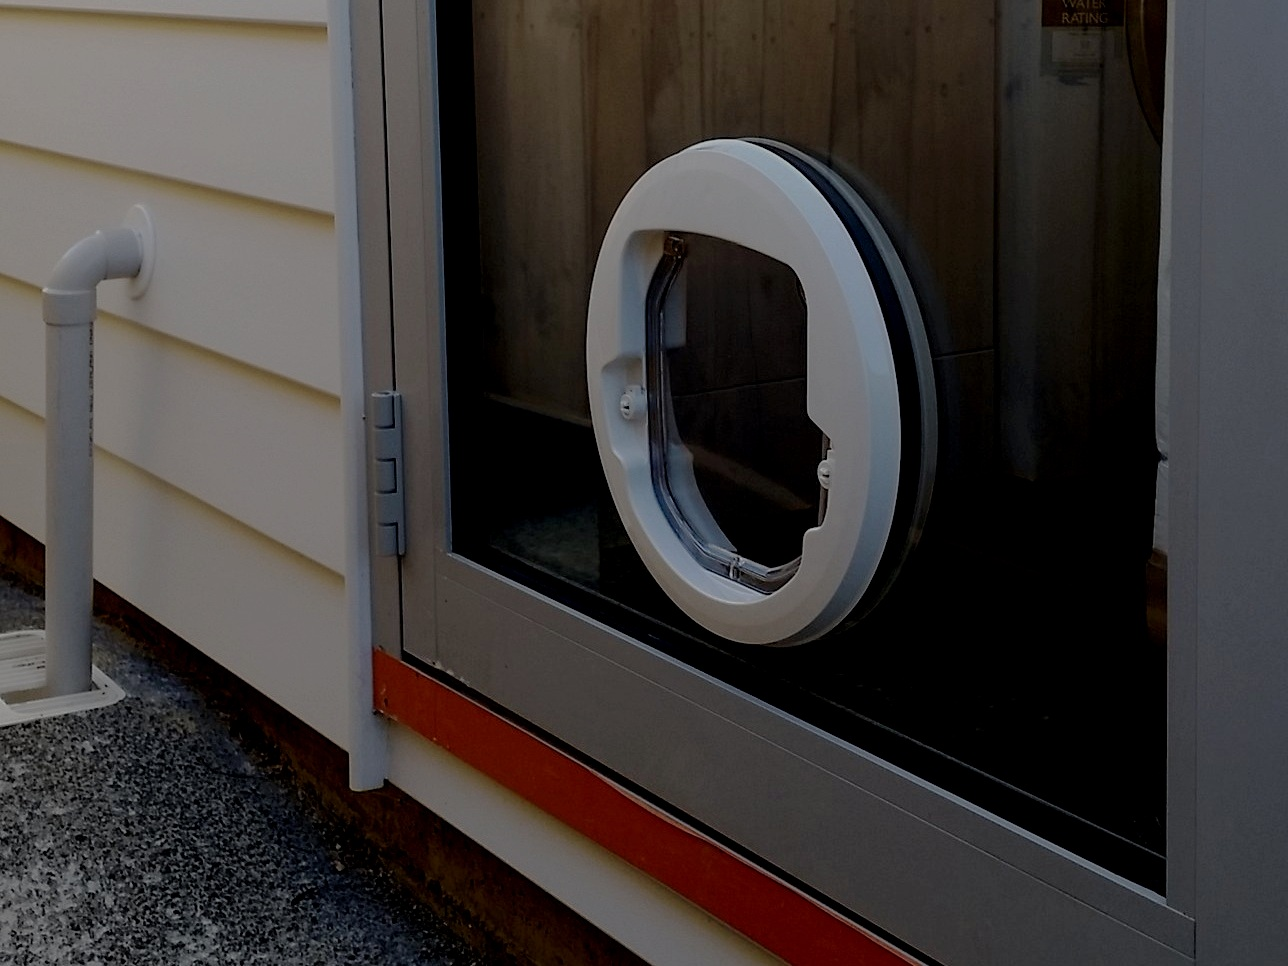 cat doors - standard, microchip or app control